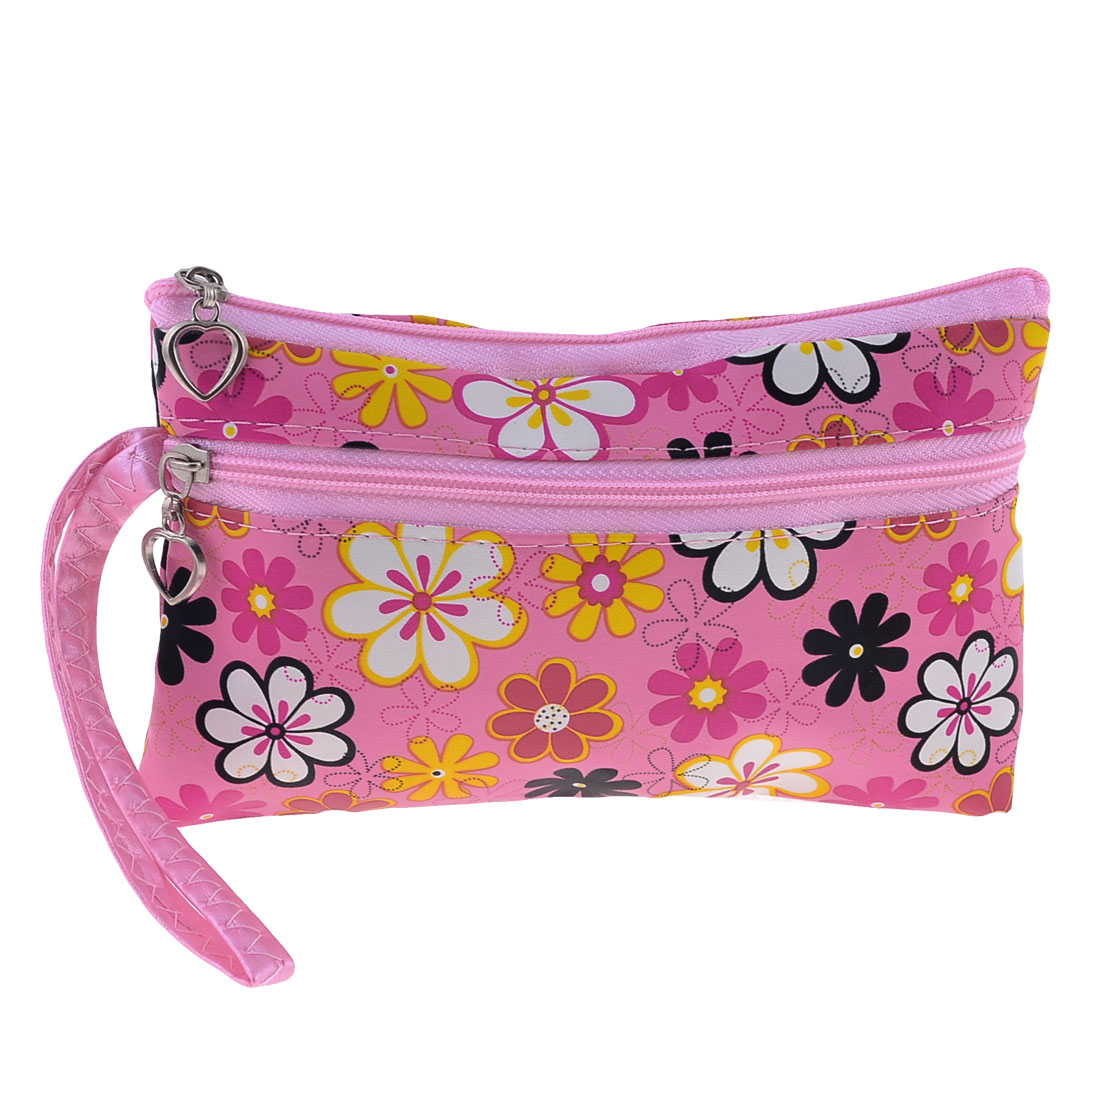 "5.9"" High Double Zipper Flower Printed Coin Change Purse w Wrist Starp"